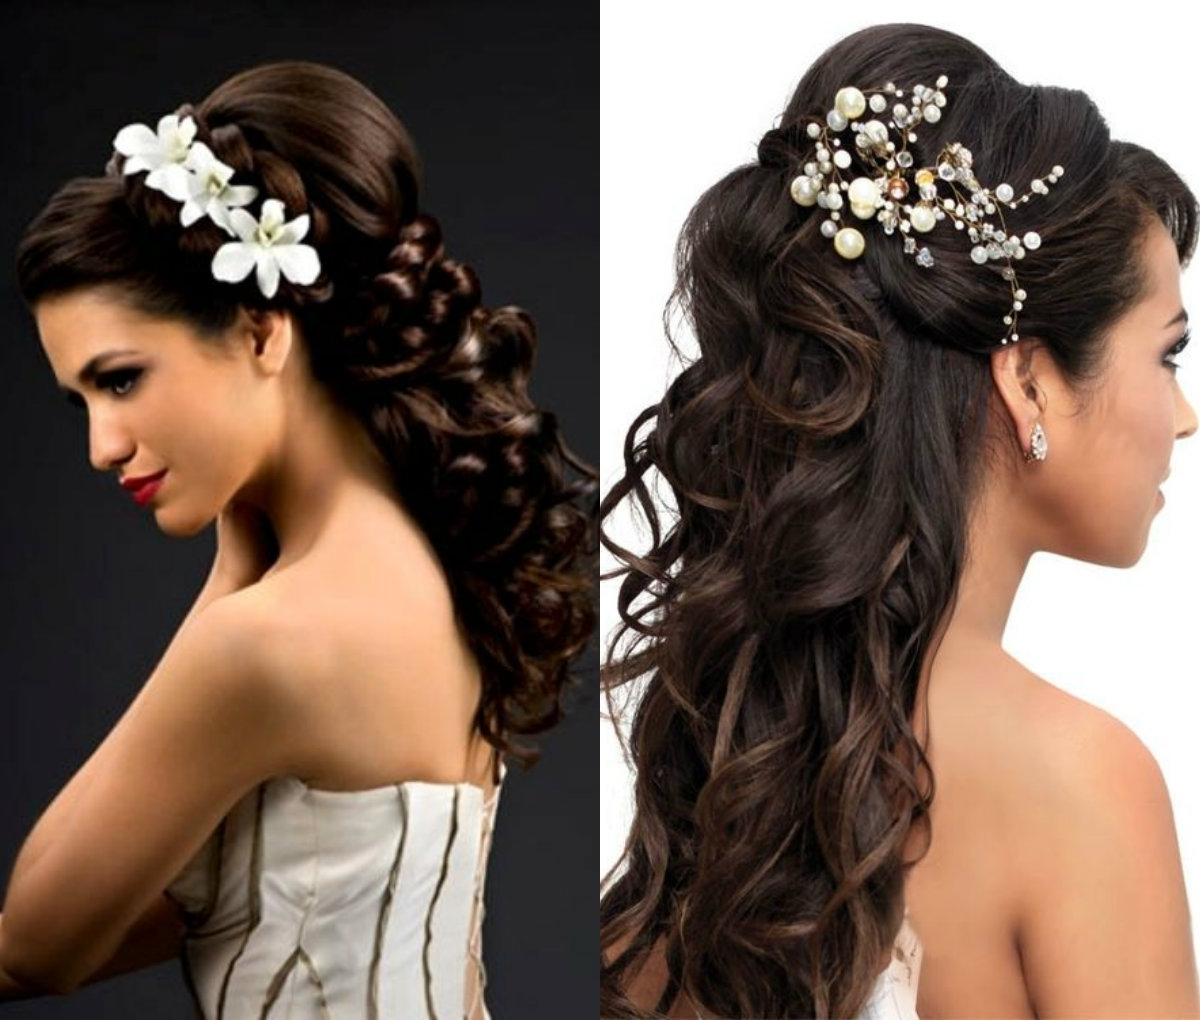 Hairstyles Half Up And Down For Wedding Ideas Mediumth Hair Guest Intended For Latest Wedding Guest Hairstyles For Long Hair With Fascinator (View 4 of 15)